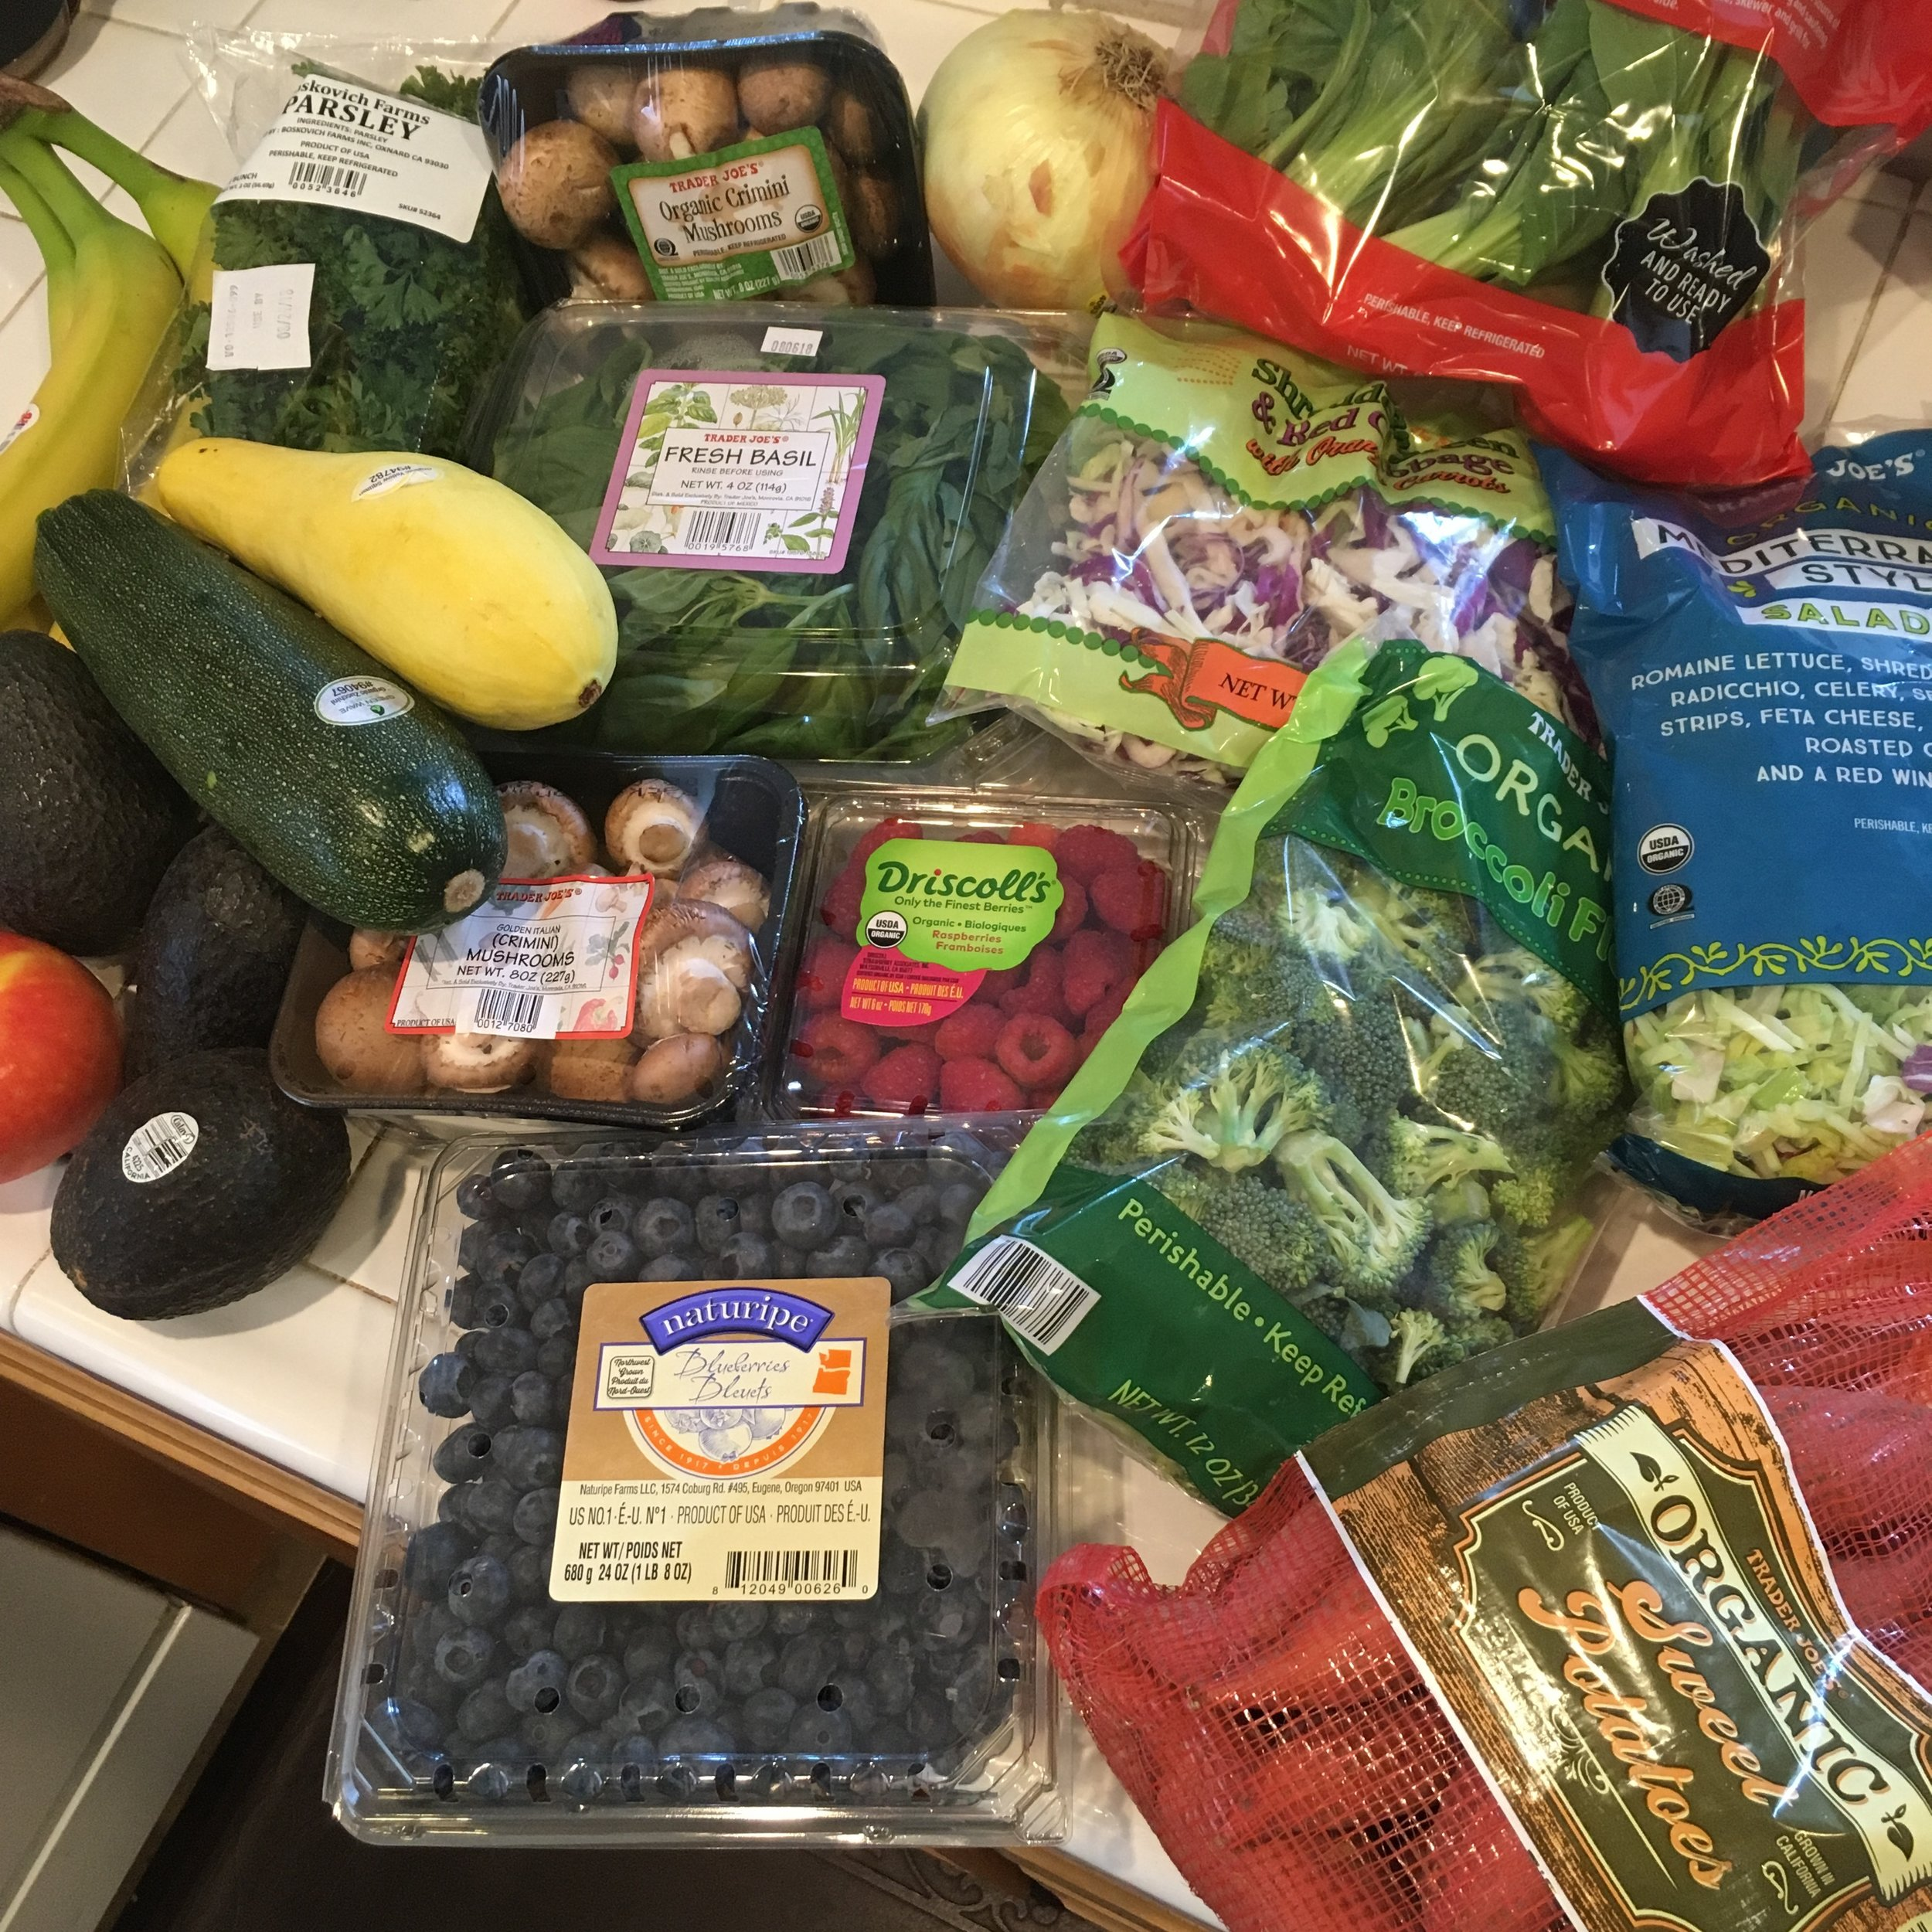 The grocery run when I returned home. Fresh veggies and fruit for days!!